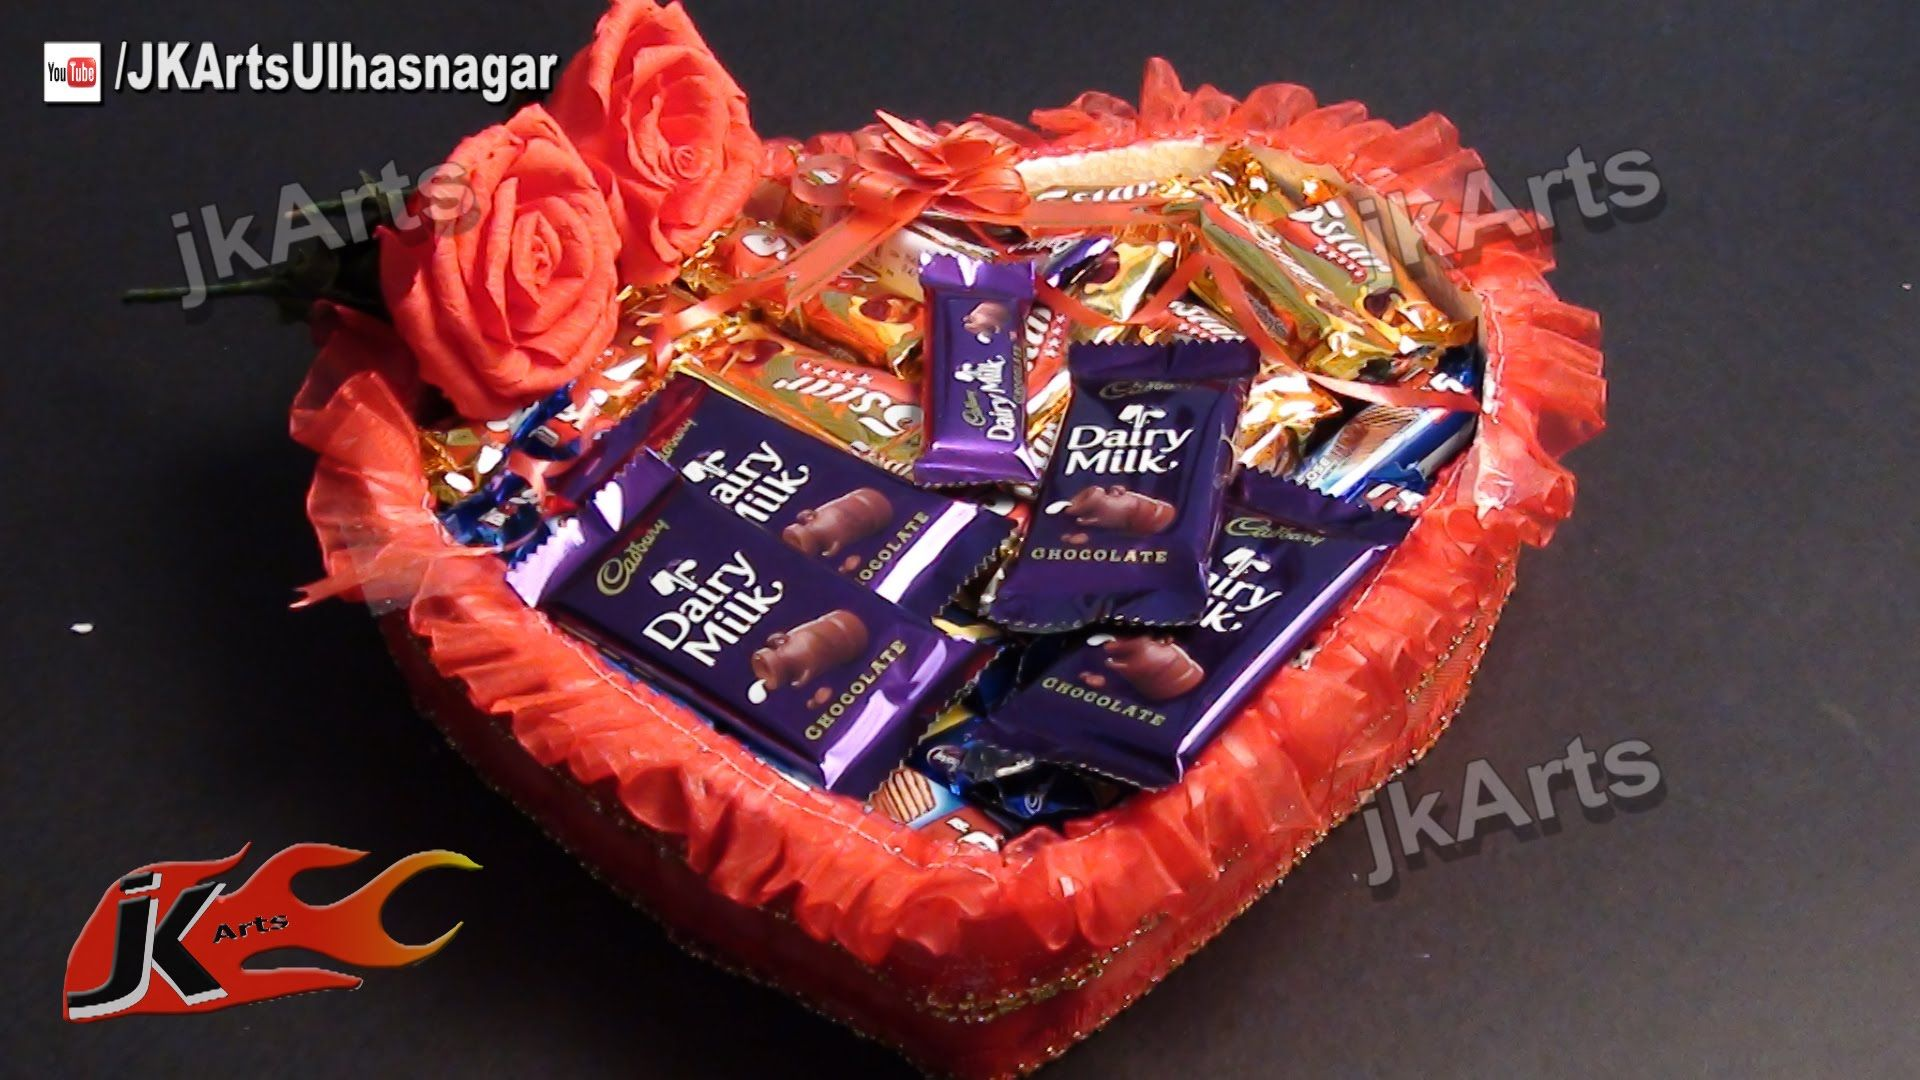 Diy Gift Idea Chocolate Gift Basket How To Make Jk Arts 481